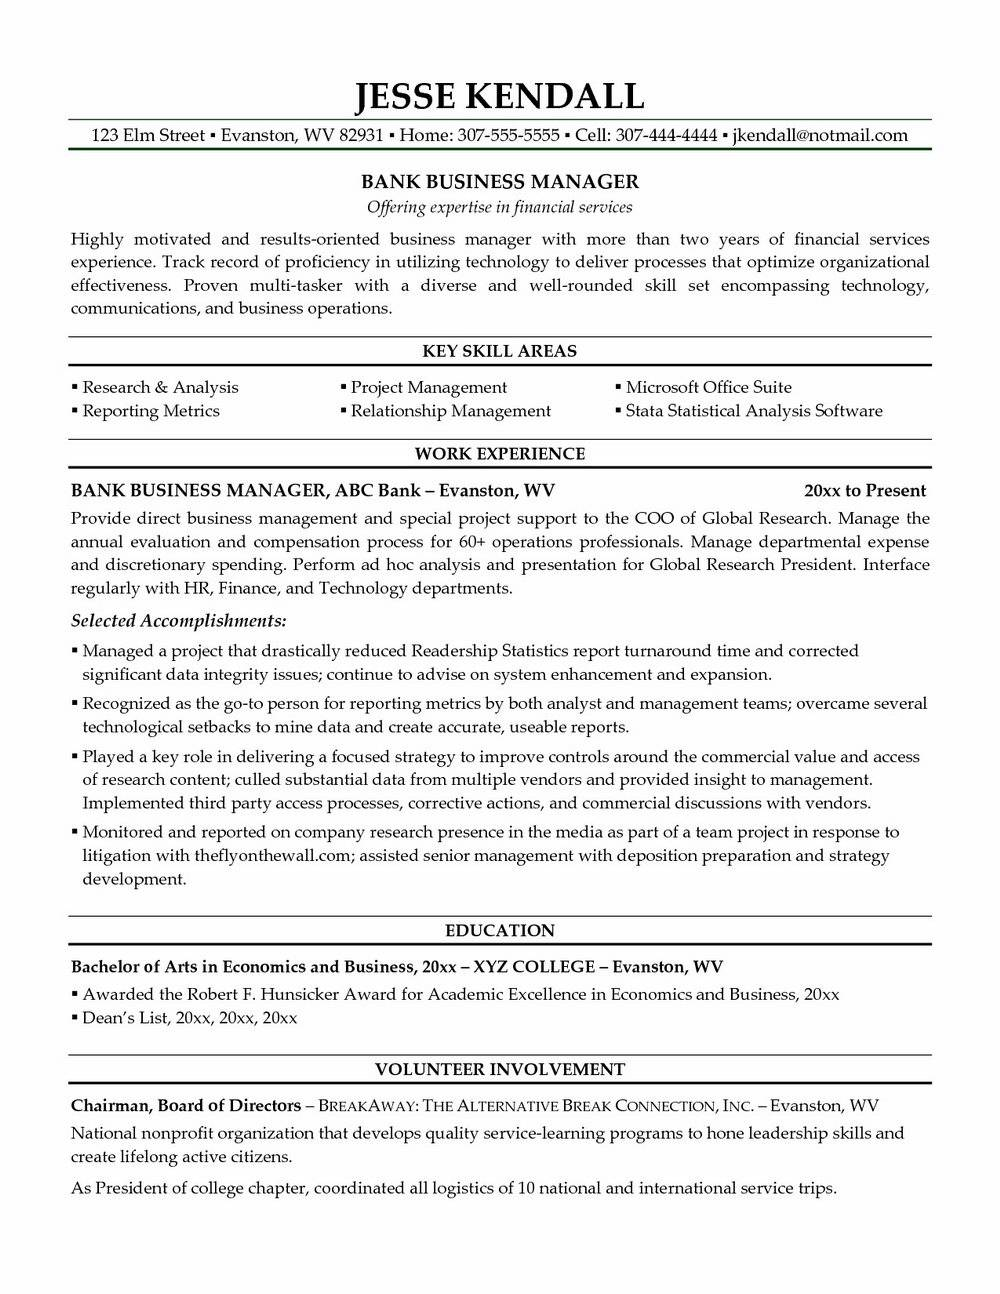 Senior Operations Manager Resume Template